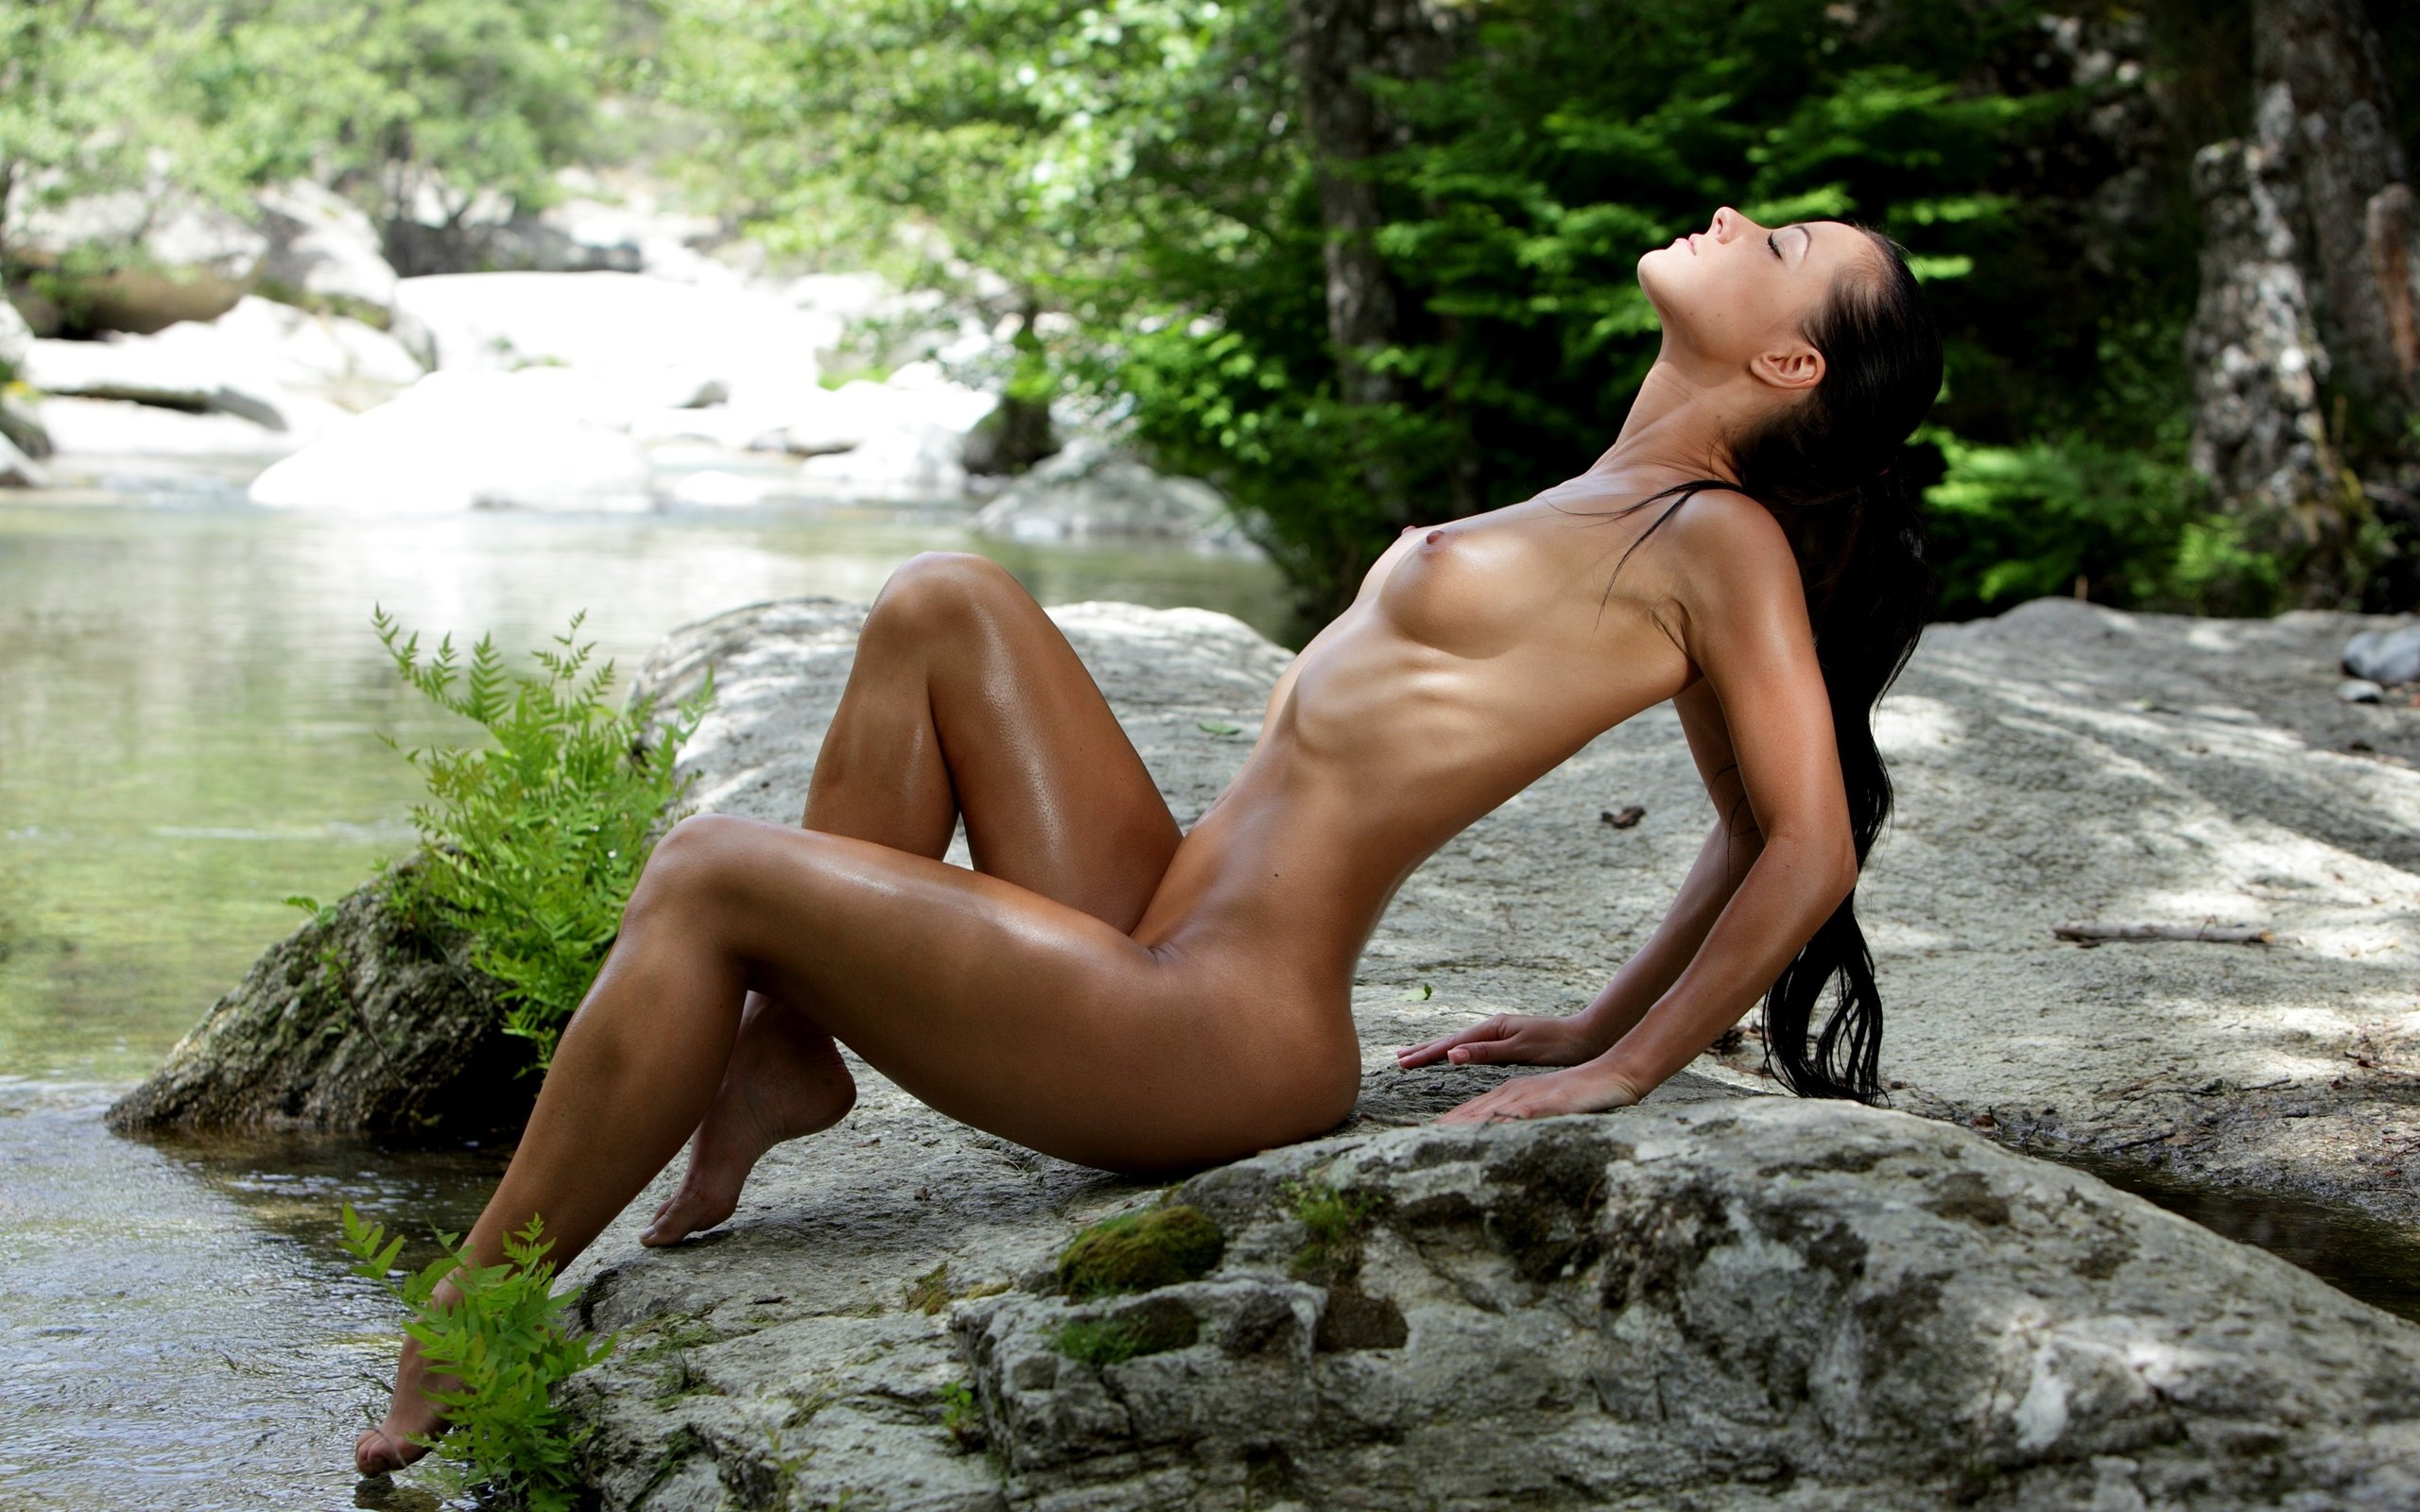 Nude babes sexy nude models posing naked